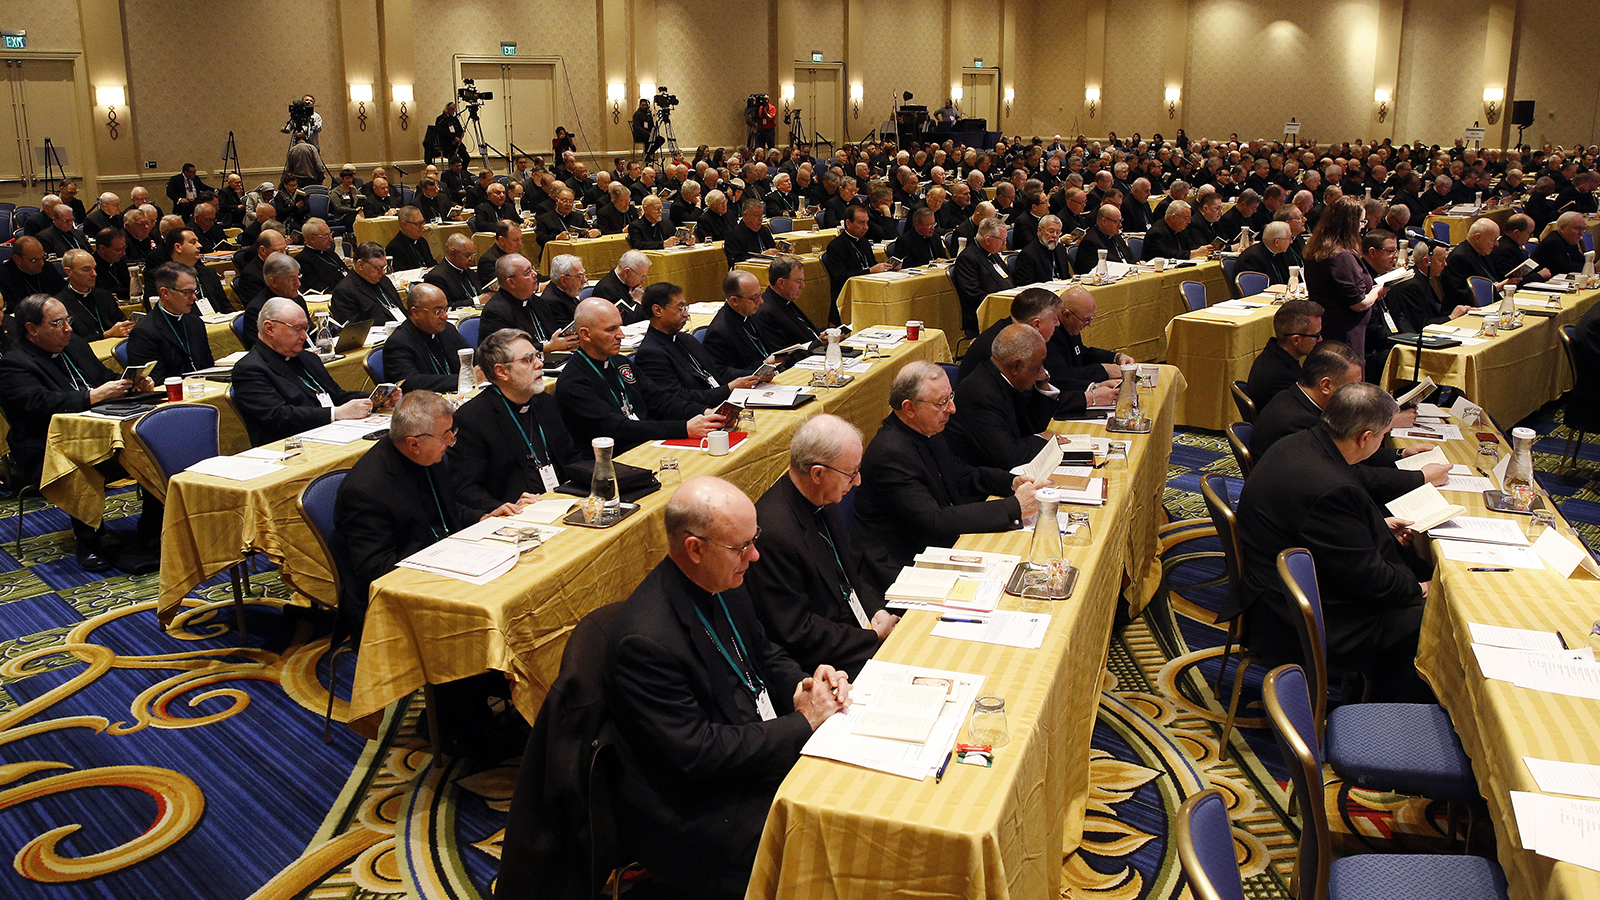 Members of the U.S. Conference of Catholic Bishops gather for the USCCB's annual fall meeting on Nov. 12, 2018, in Baltimore. (AP Photo/Patrick Semansky)